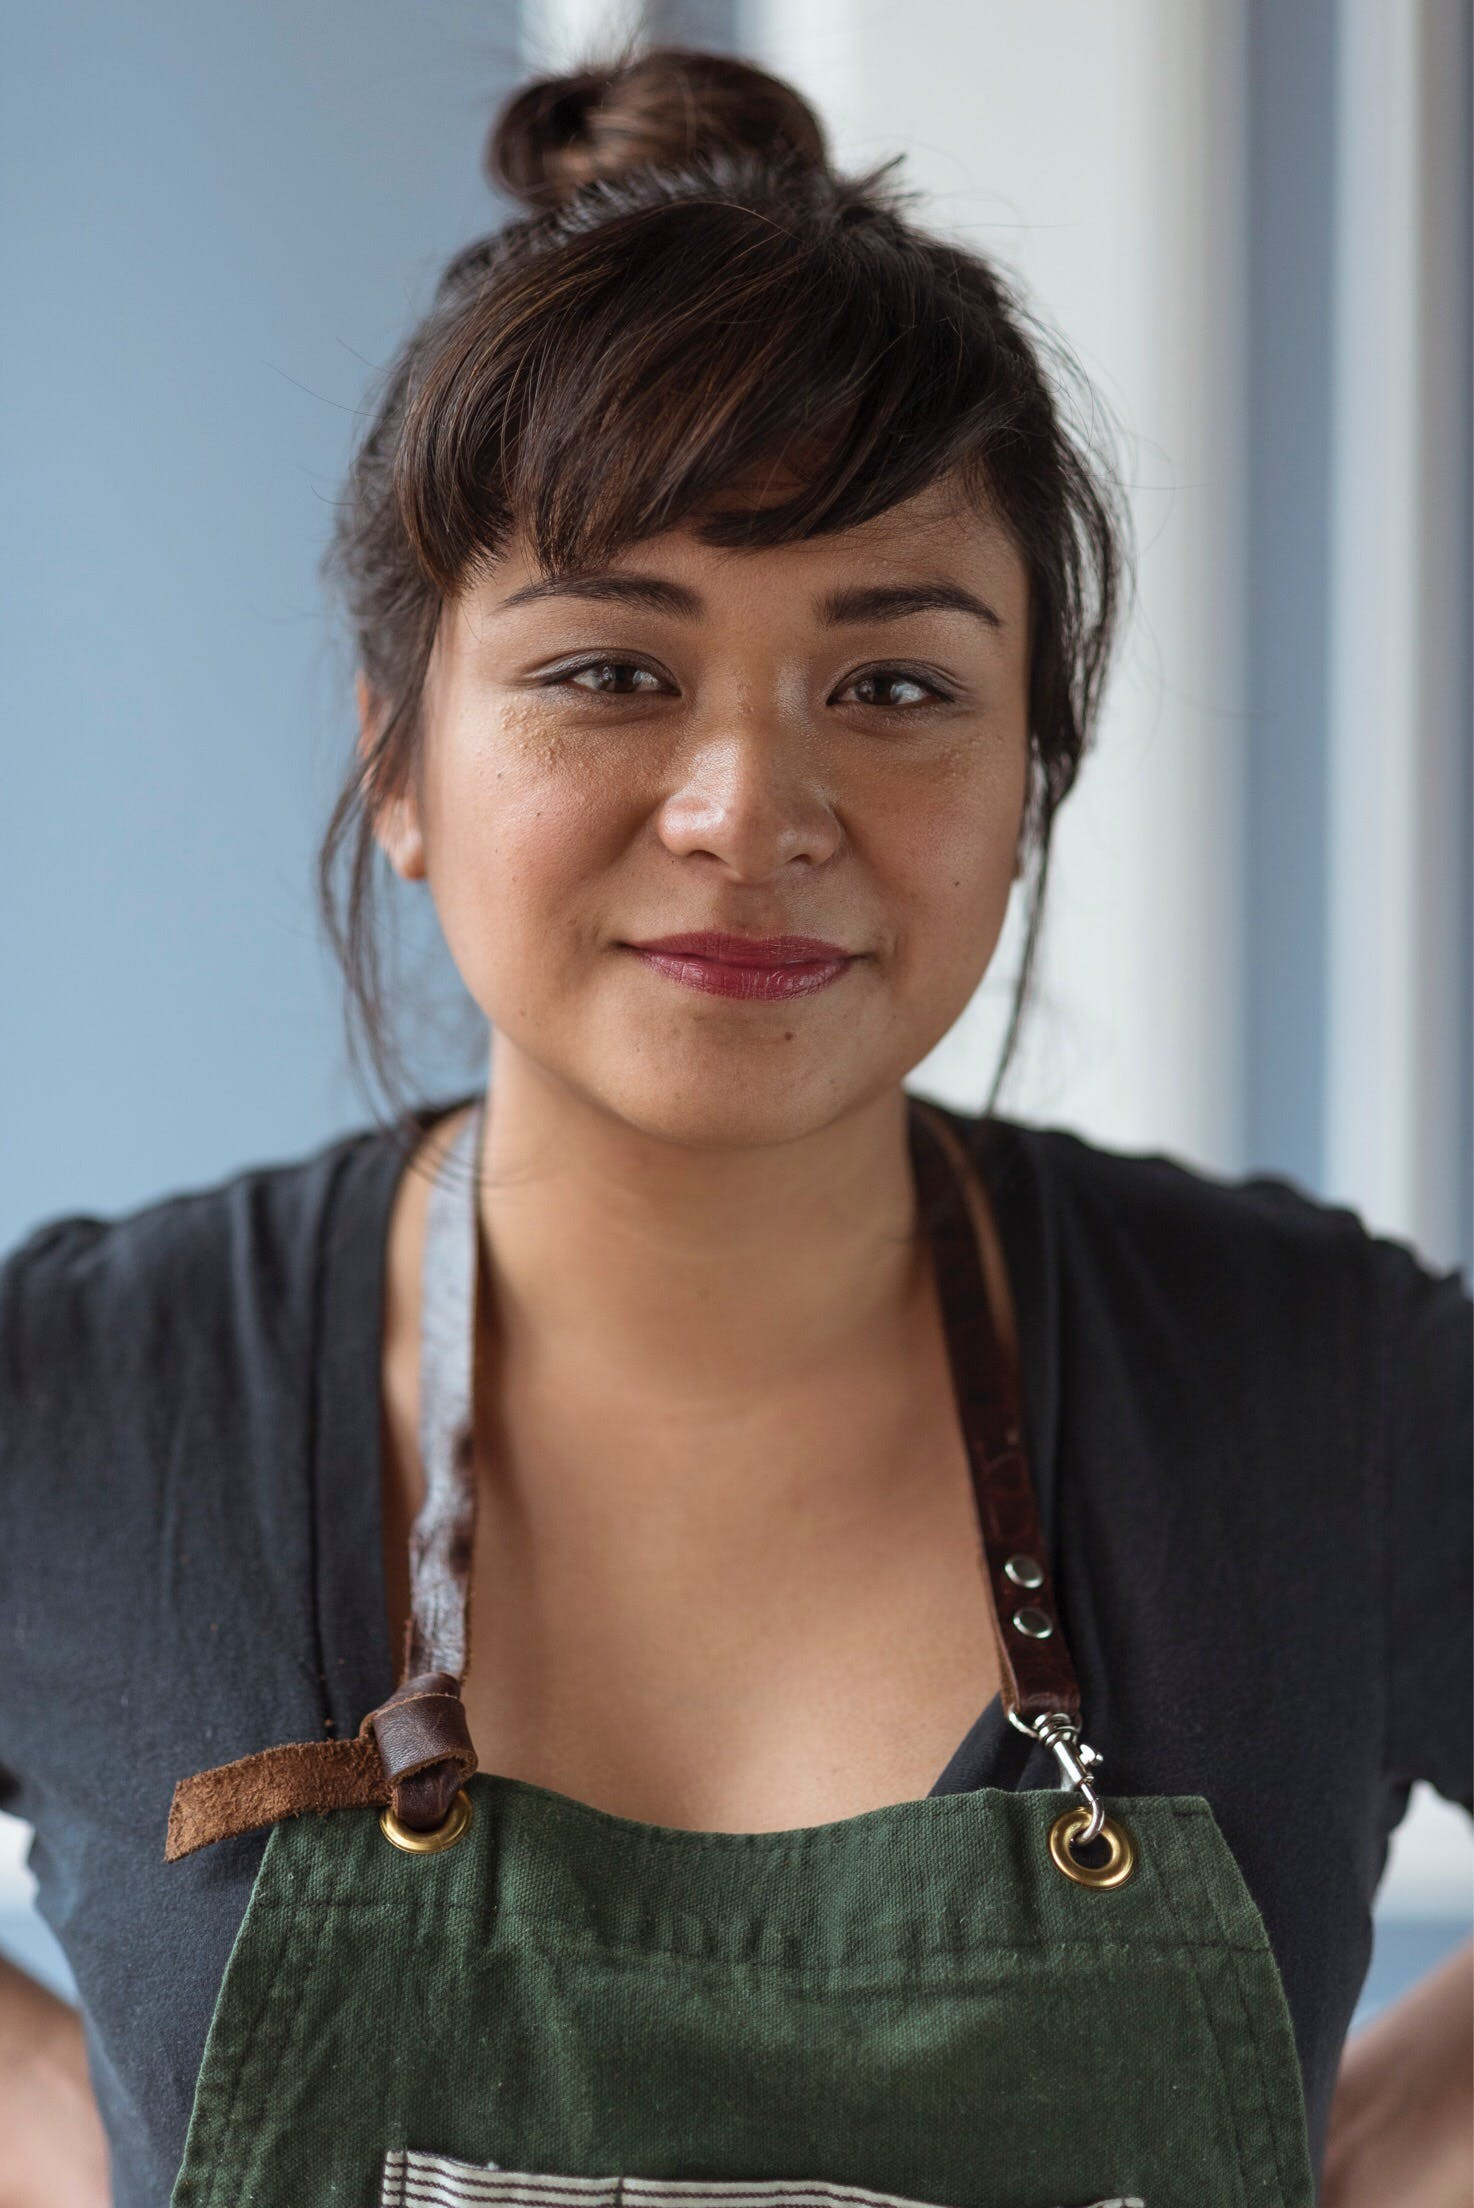 Nicole Bayani of Presidio lady run restaurants chicago